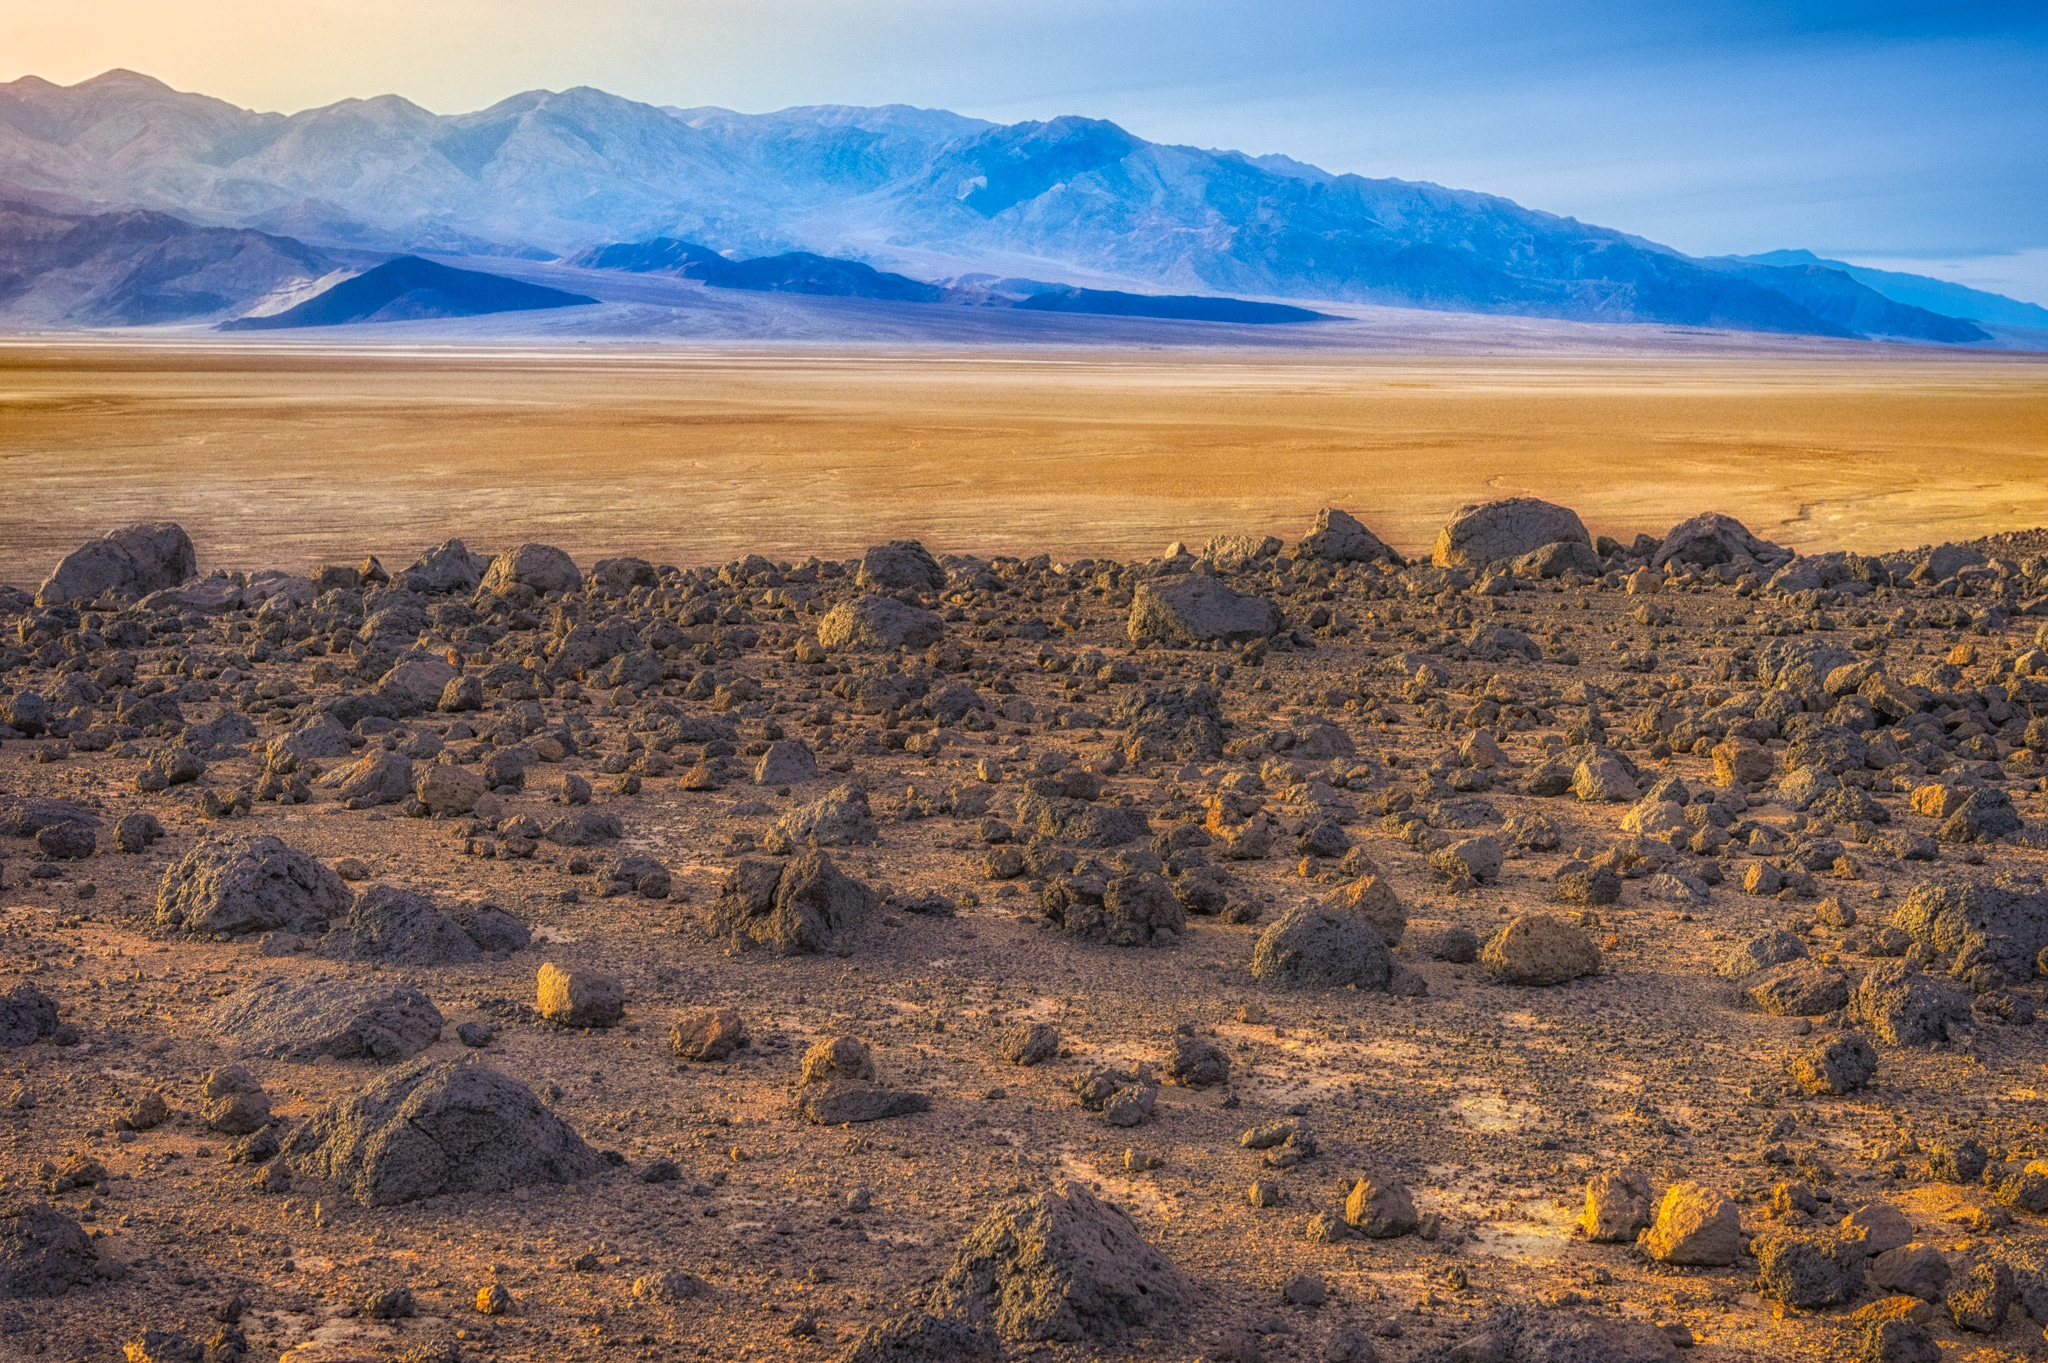 Mars Hill and Ventifact Ridge are on the opposite side of Badwater Road from Artist's Drive in Death Valley National Park. Boulders of basalt are strewn over the desert pavement on these two high-point overlooking Badwater Basin.